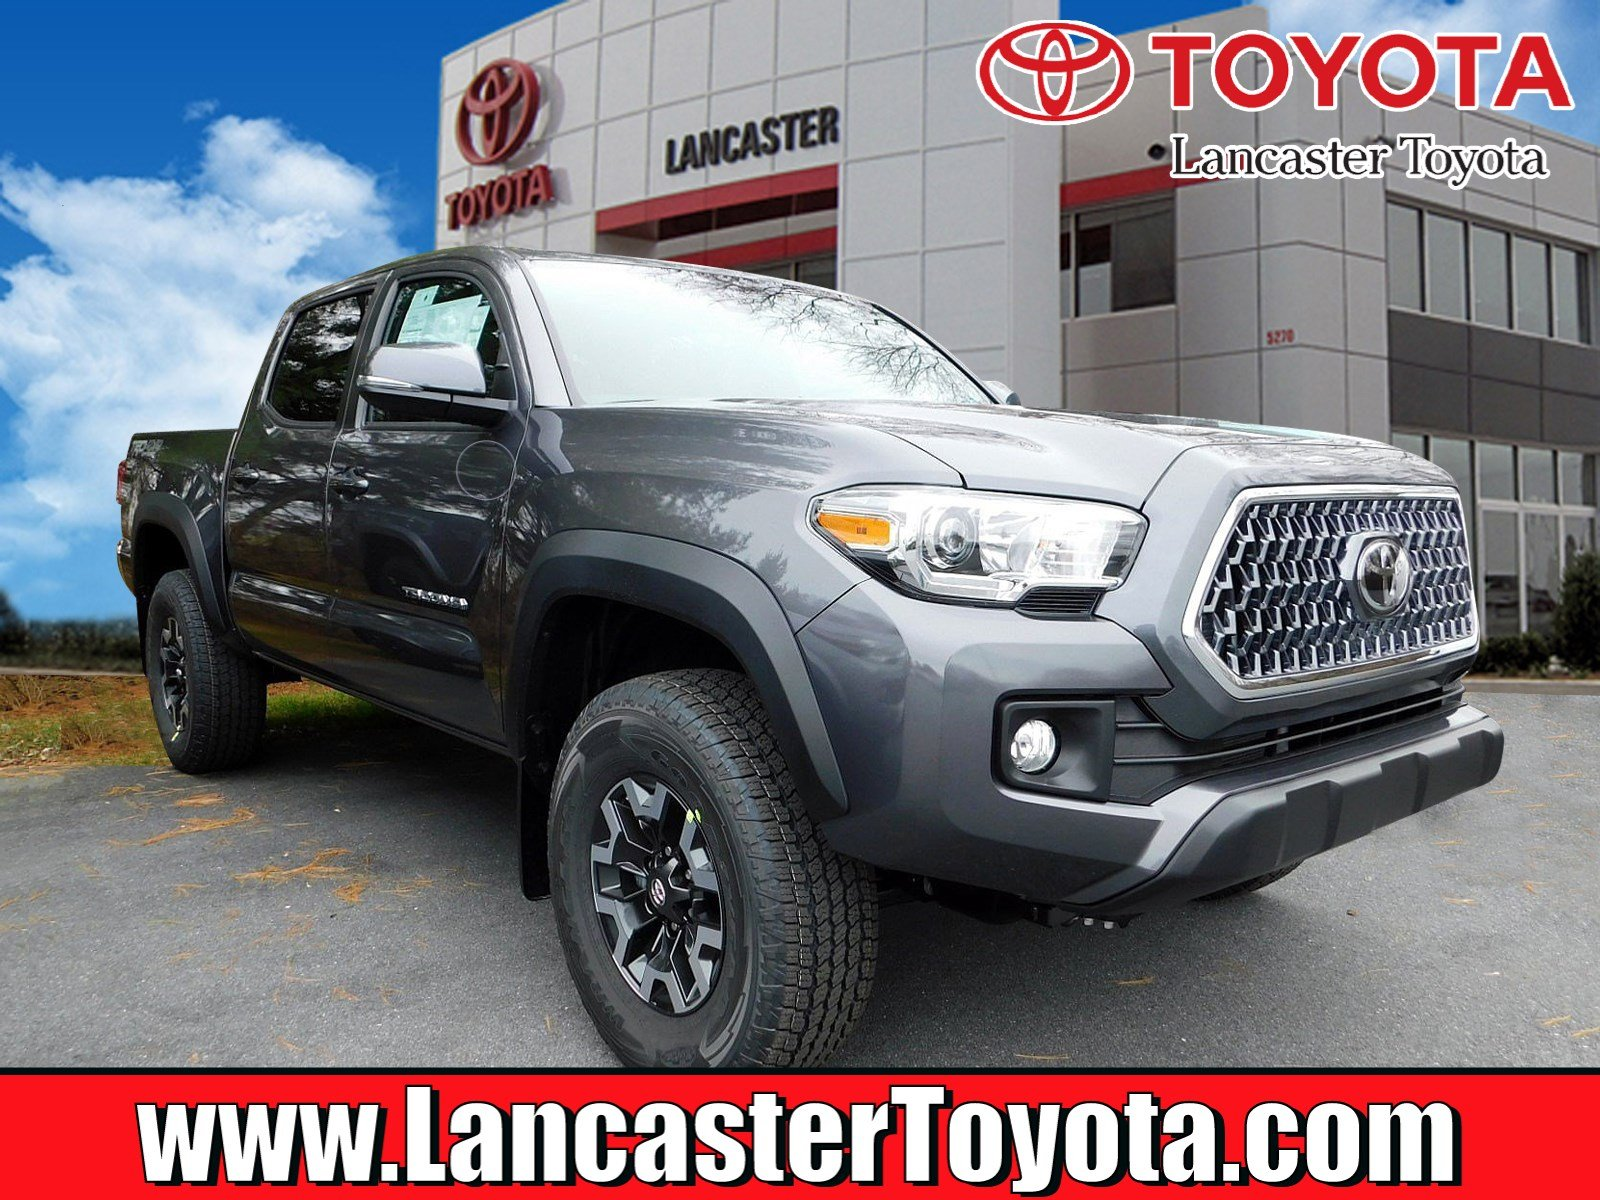 New 2019 Toyota Tacoma Trd Off Road Double Cab In East Petersburg